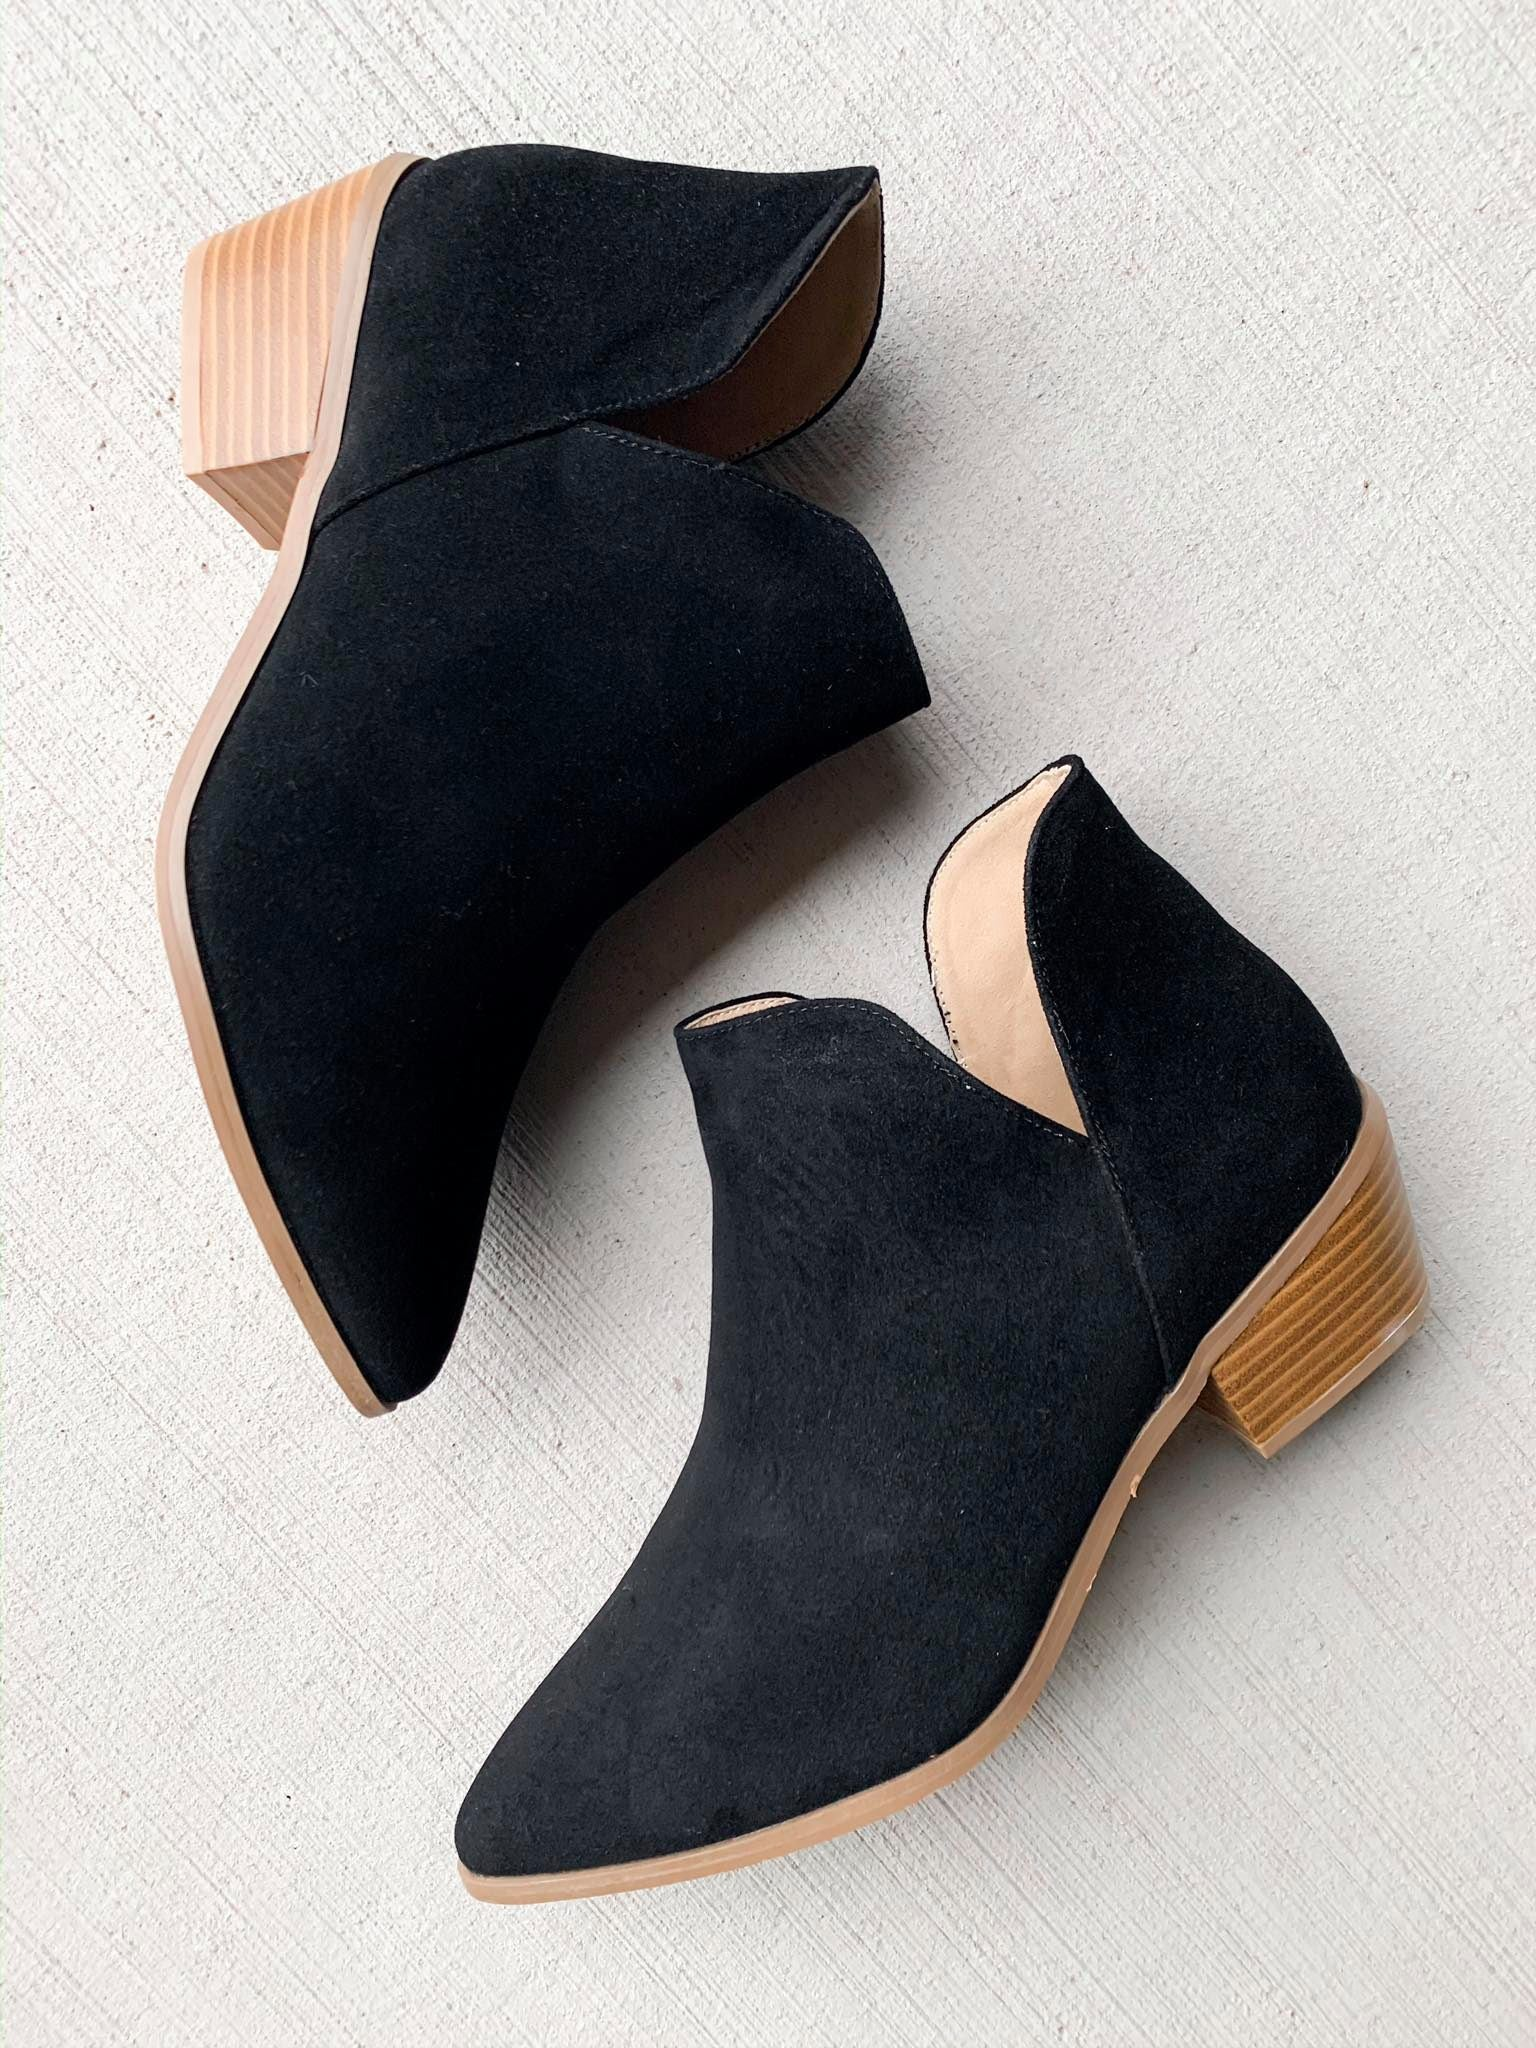 Changing Seasons Booties (Black)